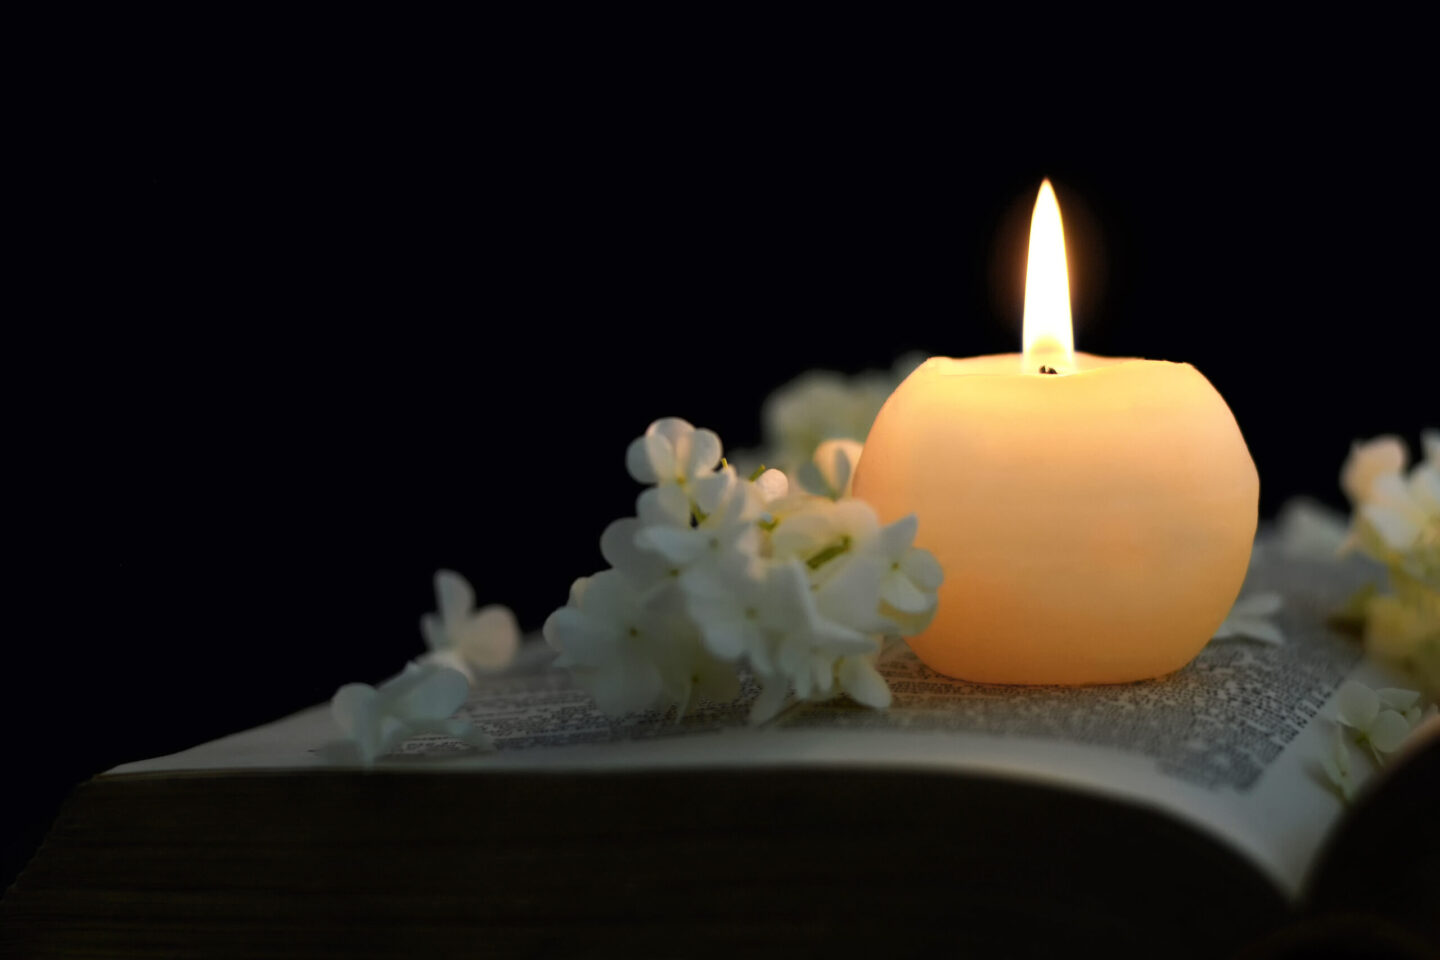 Burning,Candle,And,White,Flowers,On,Opened,Book